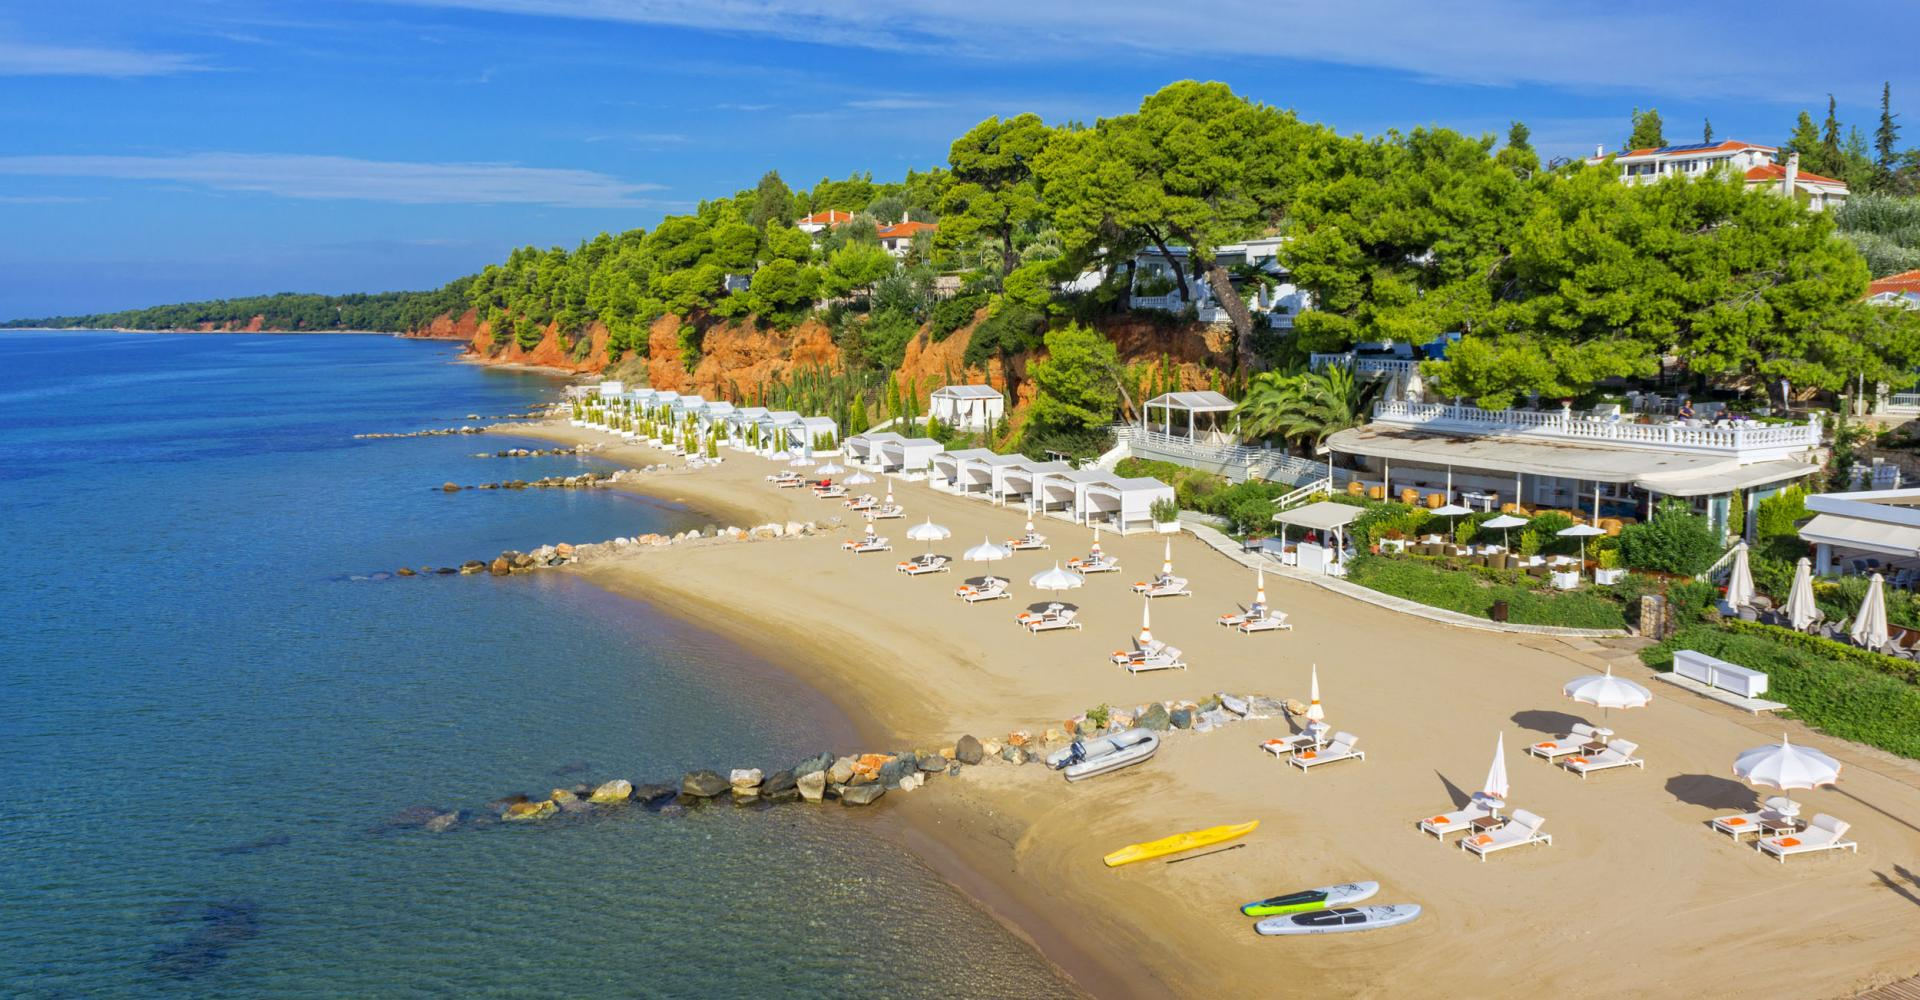 danai-beach-resort-halkidiki-greece